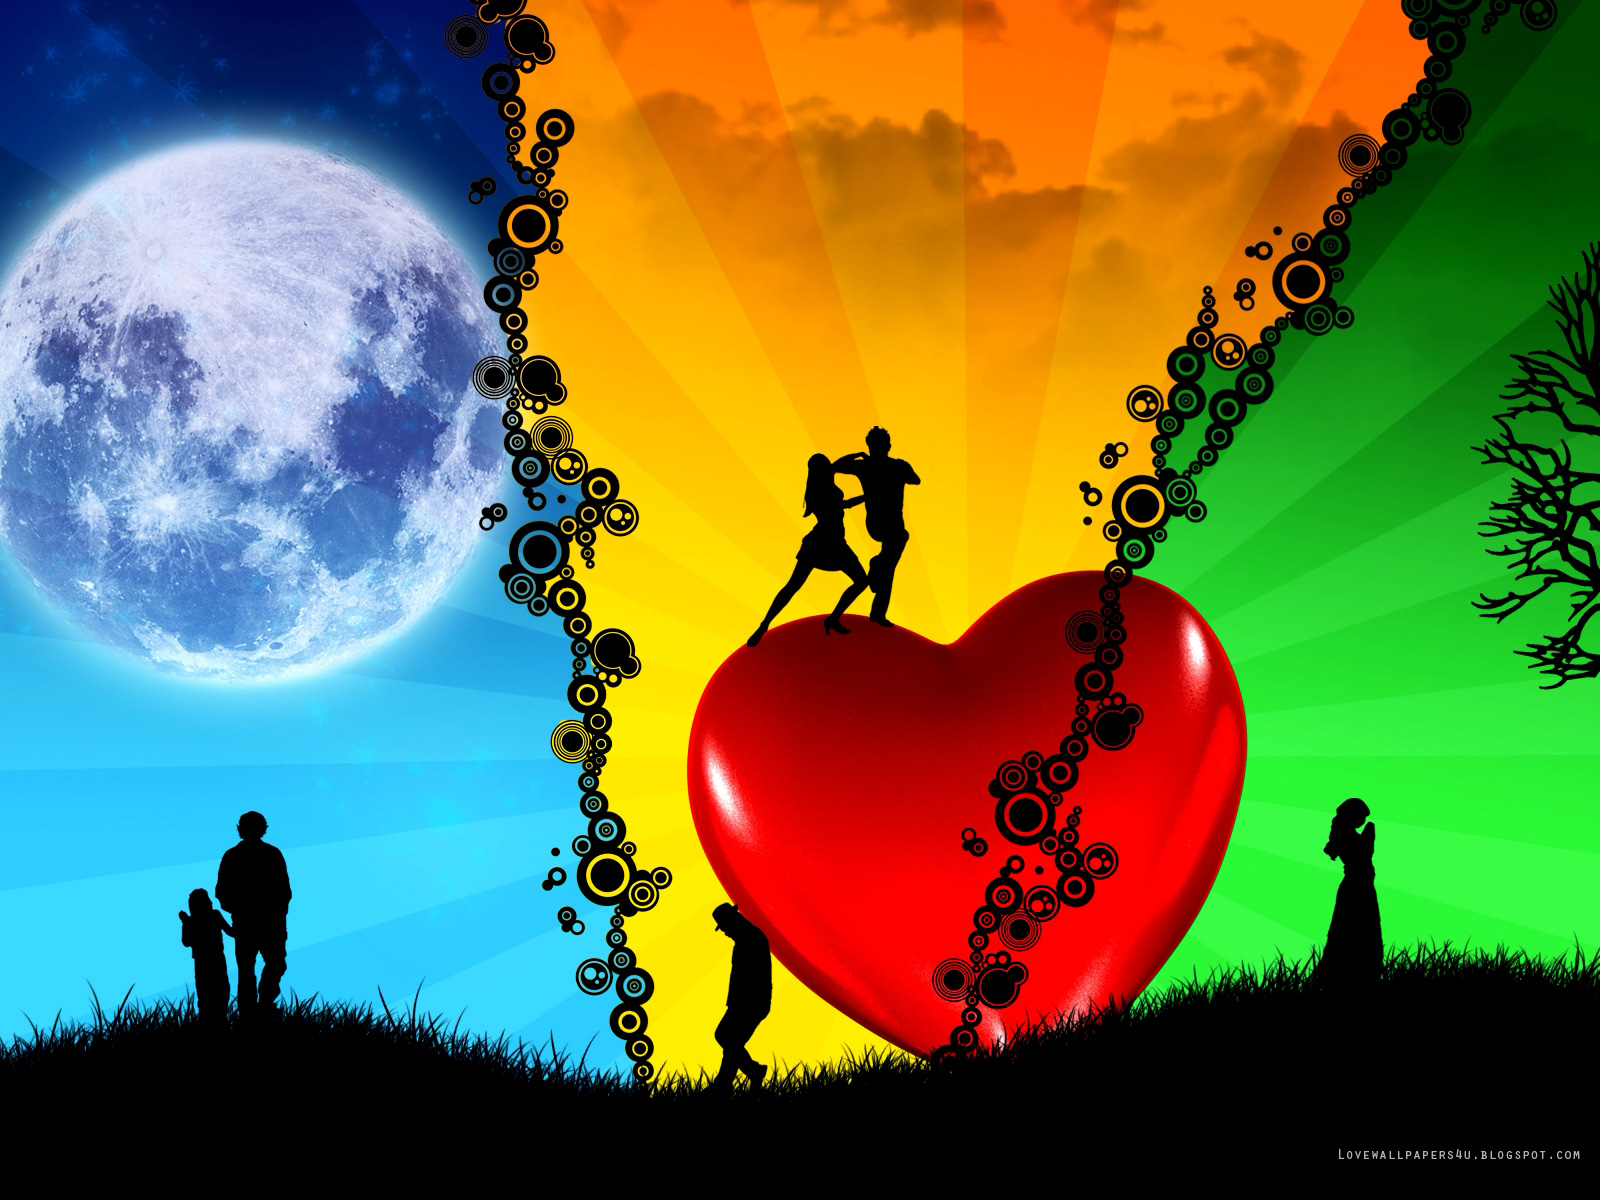 Three Seasons of Love Image